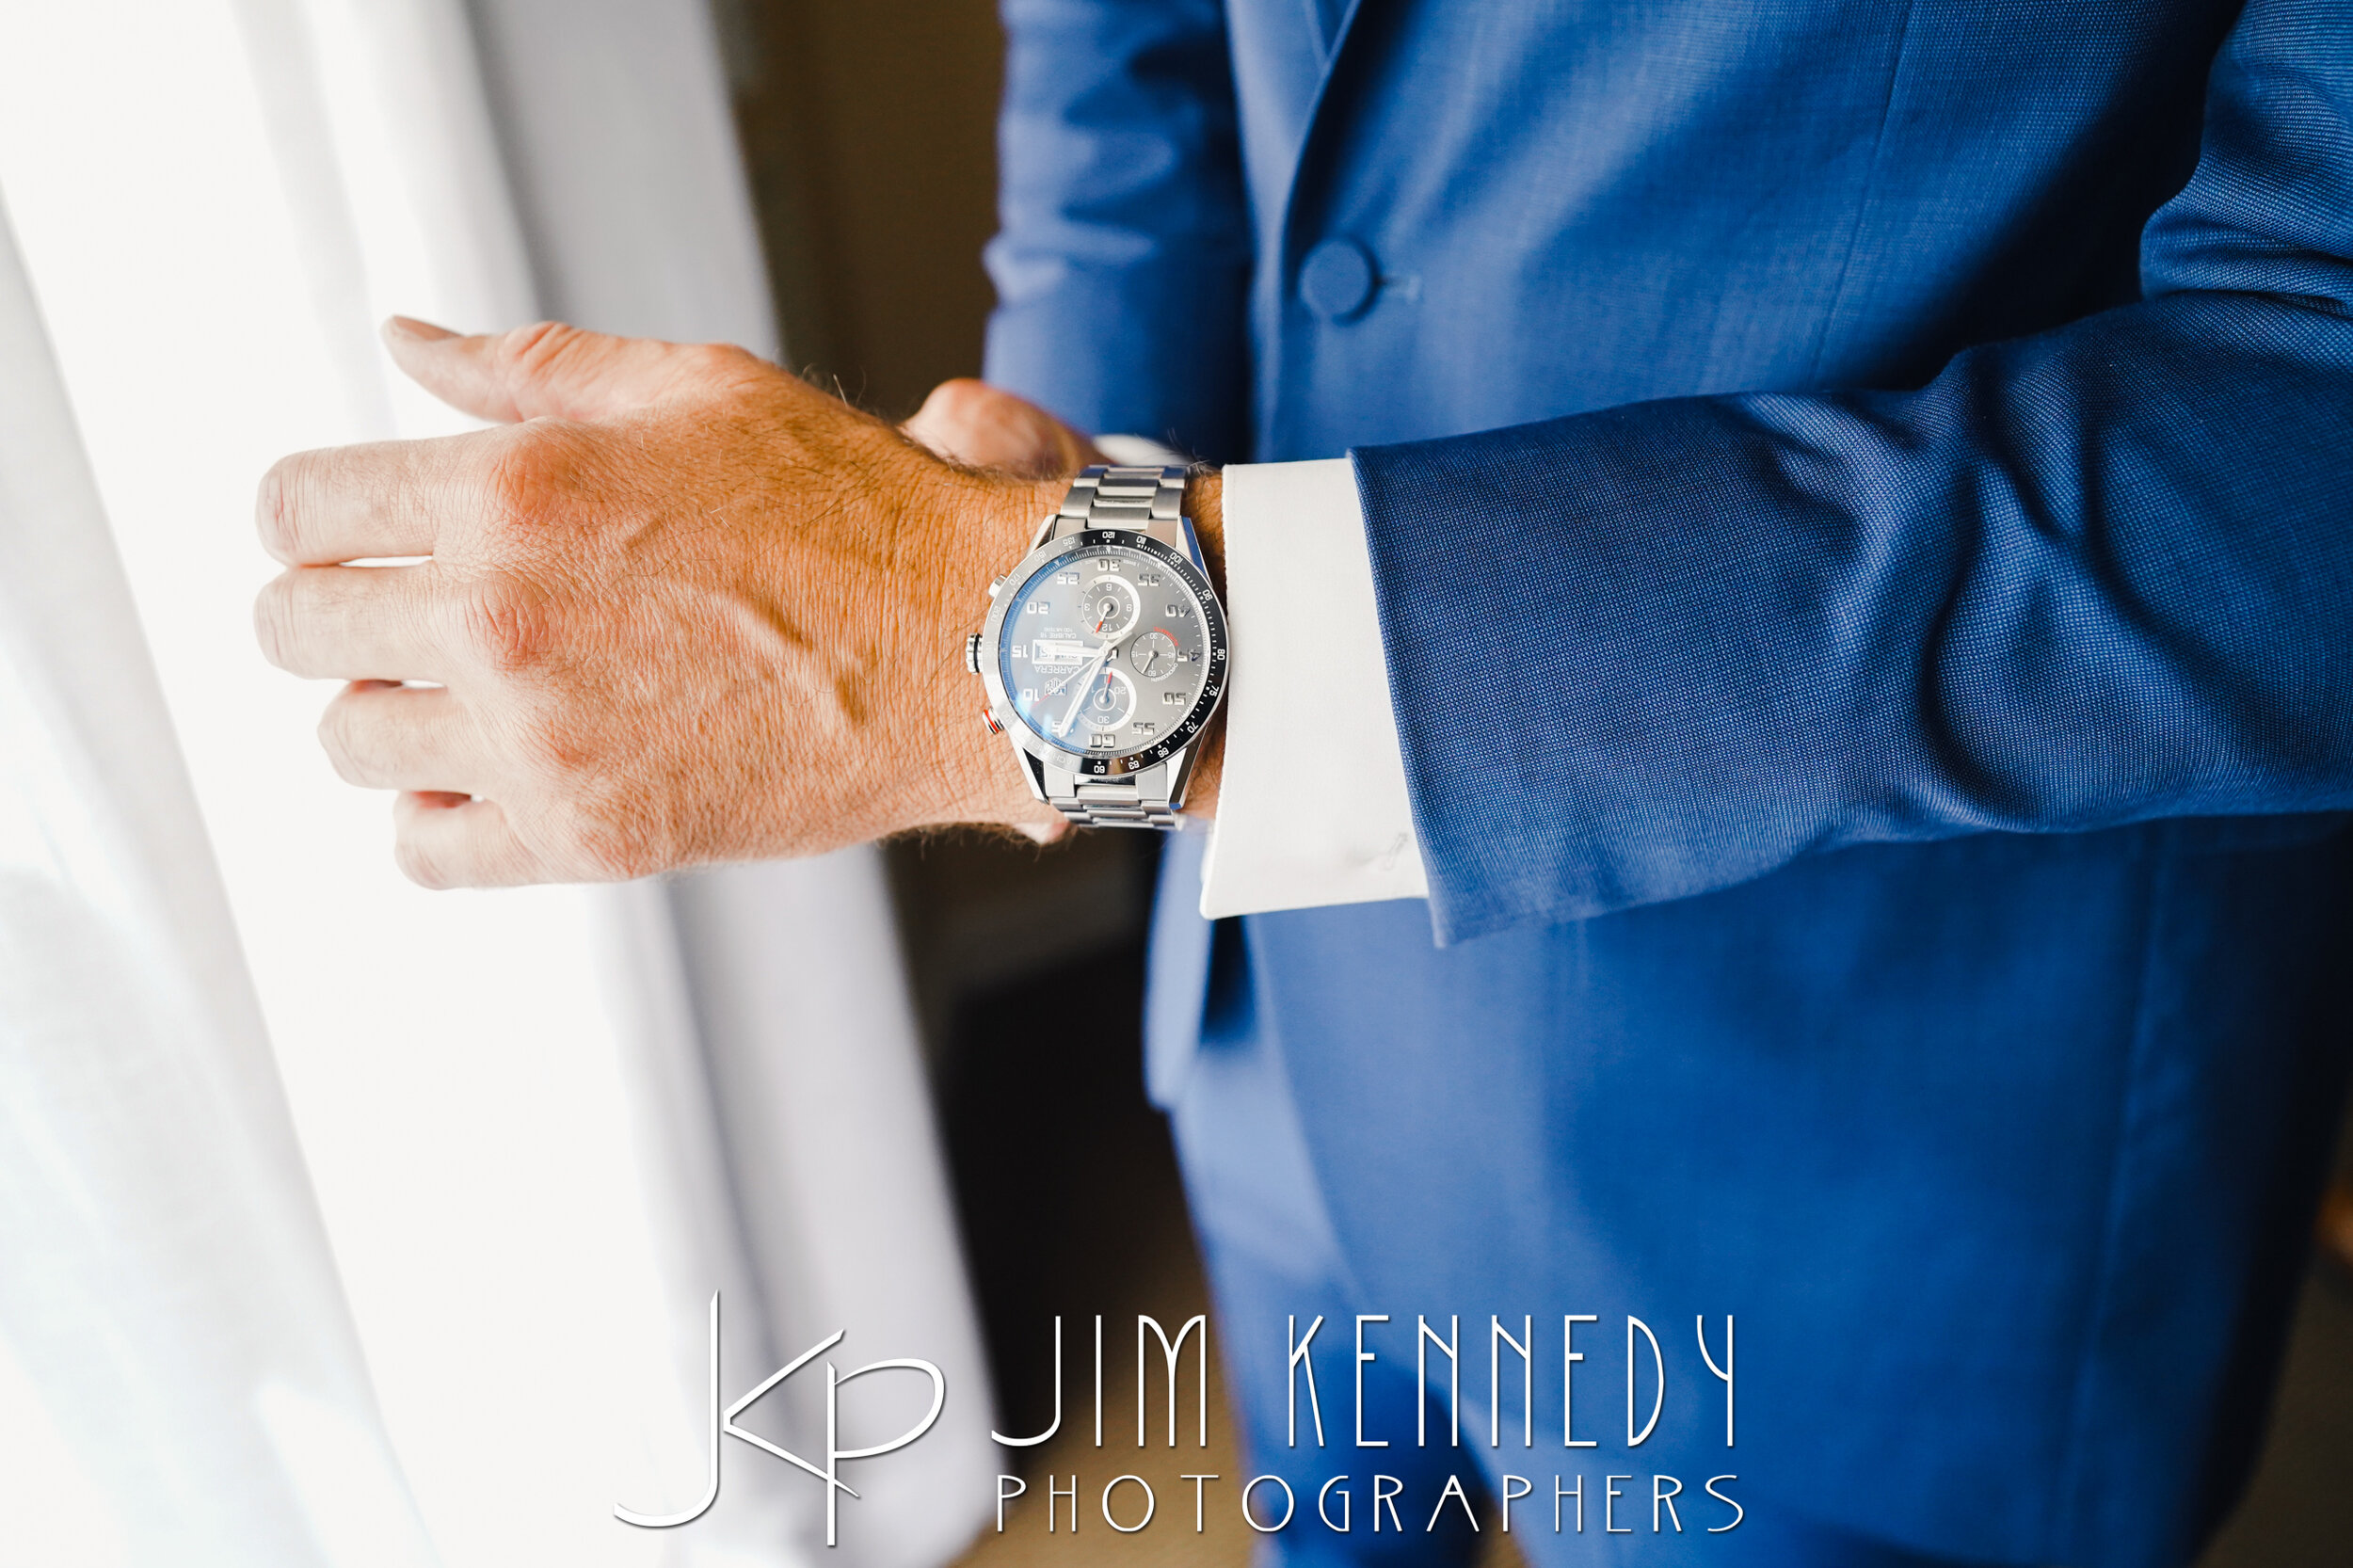 waterfront-hilton-wedding-jim-kennedy-photographers_0023.JPG